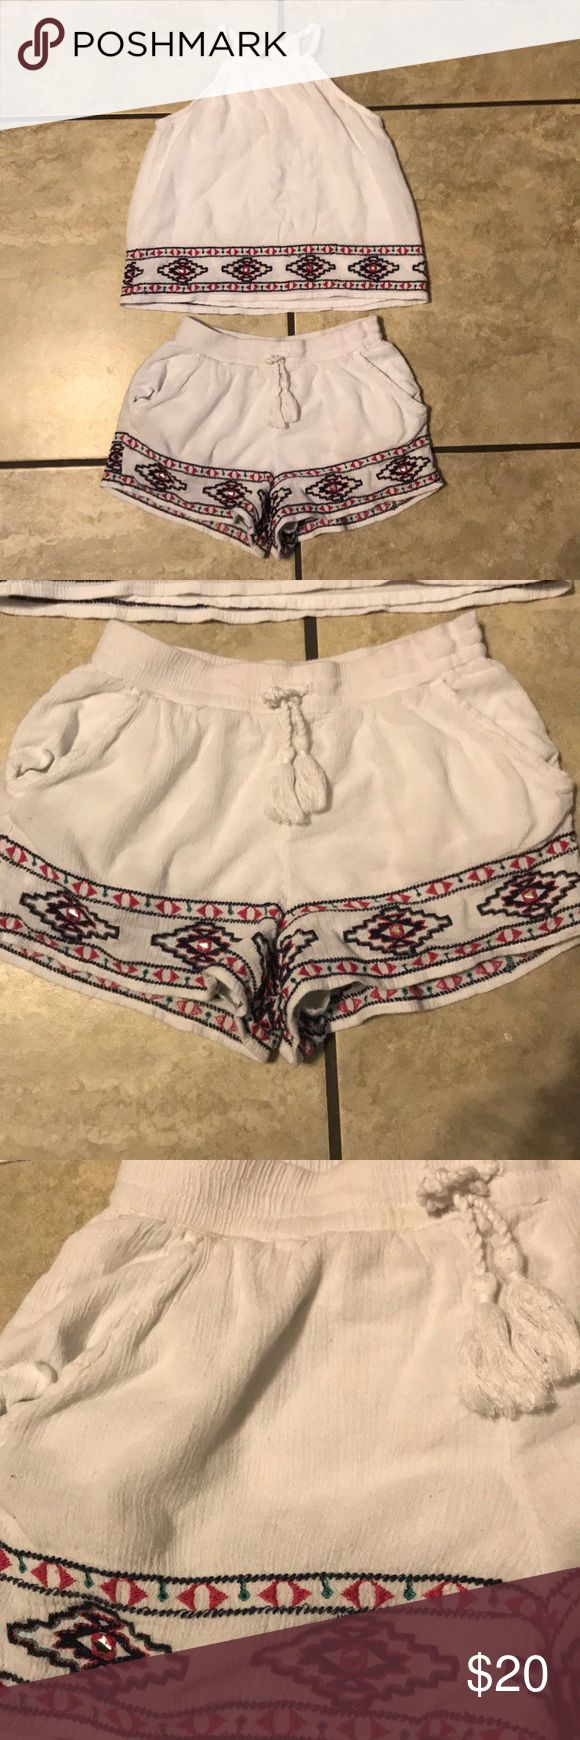 Cute Abercrombie kids outfit Super cute outfit, worn once, in good condition, no tears, smoke free home. Size 7/8 abercrombie kids Matching Sets